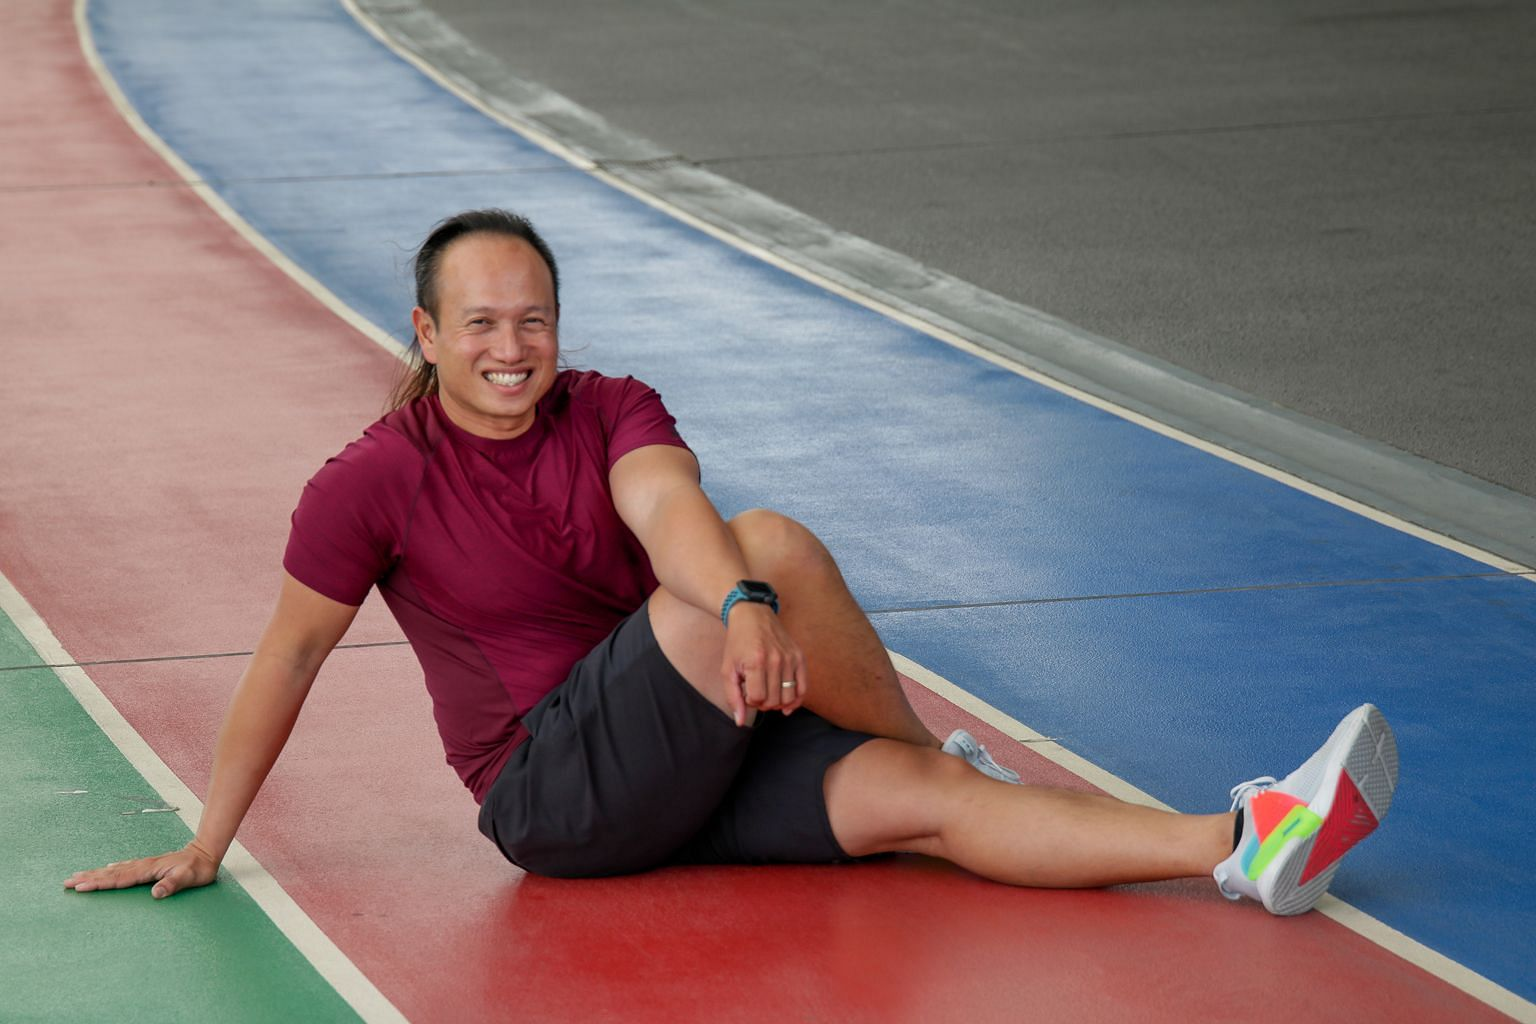 Personal trainer Shawn Quek feels that being fit helped him bounce back faster from his 10-month cancer journey.